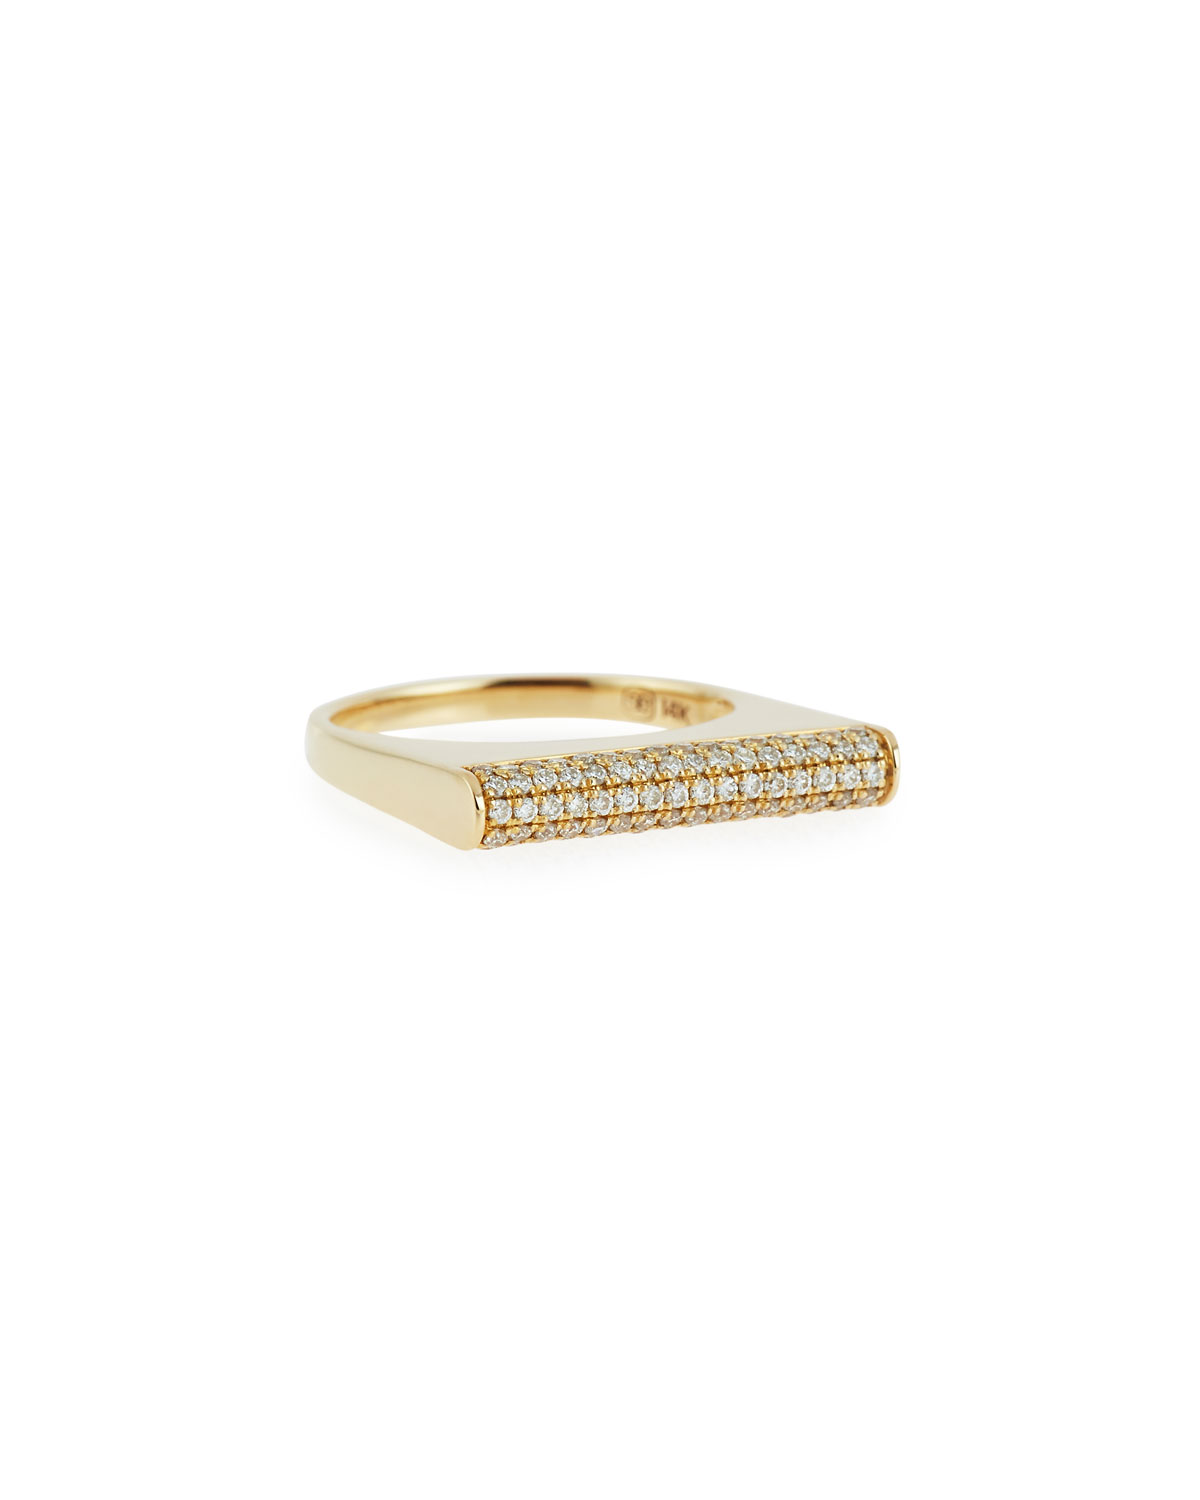 Sydney Evan Pavé Diamond Bar Roll Ring, Size 6.5